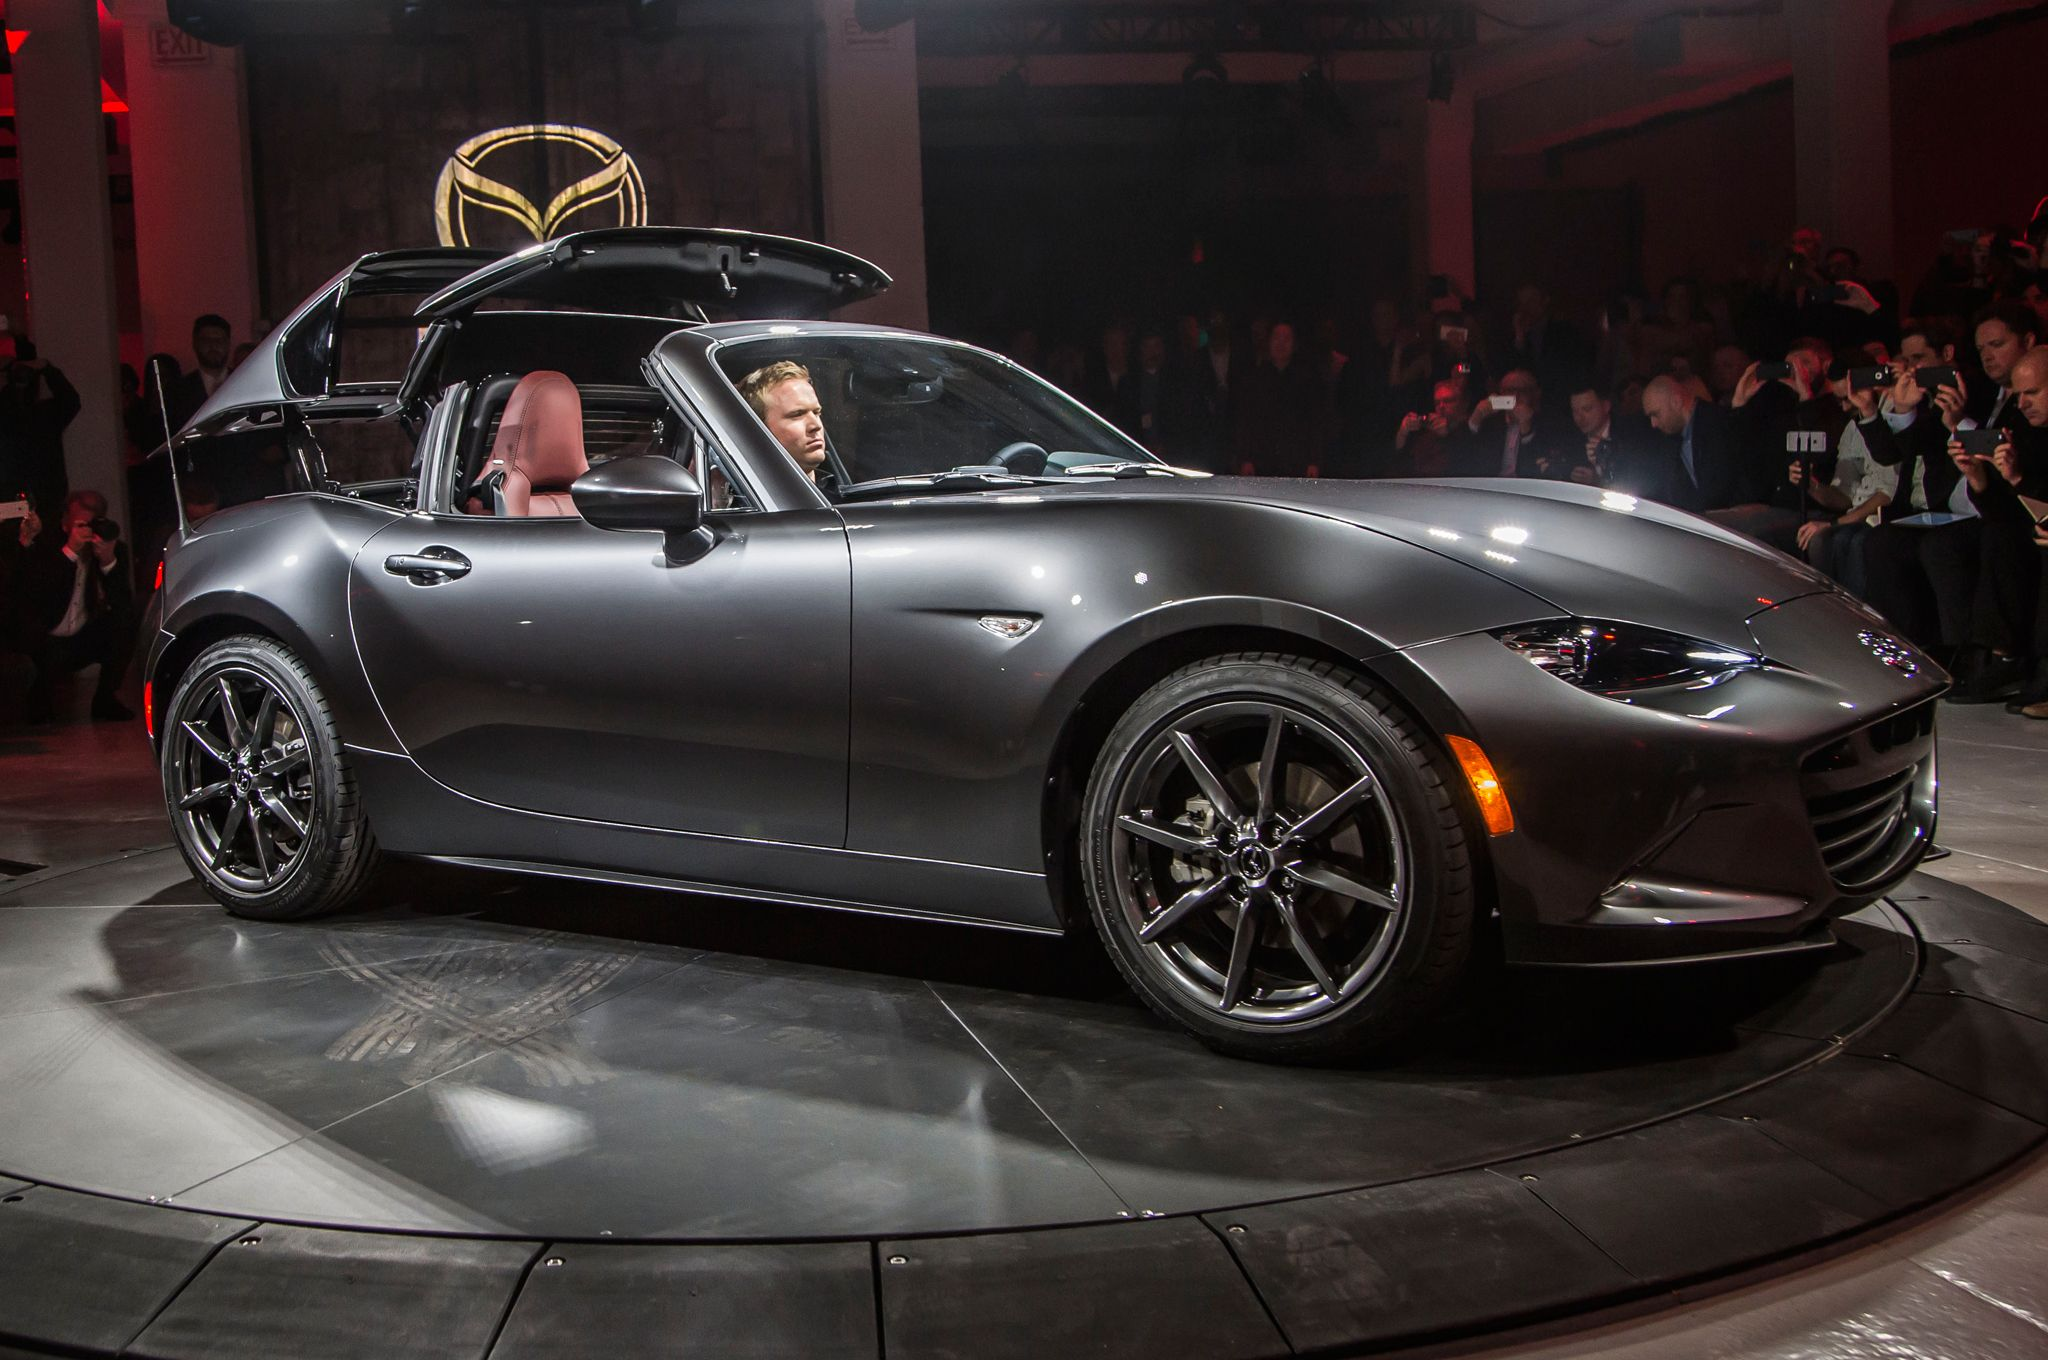 Mazda Debuts New Mx 5 With Retractable Hardtop Could This Get Any Better